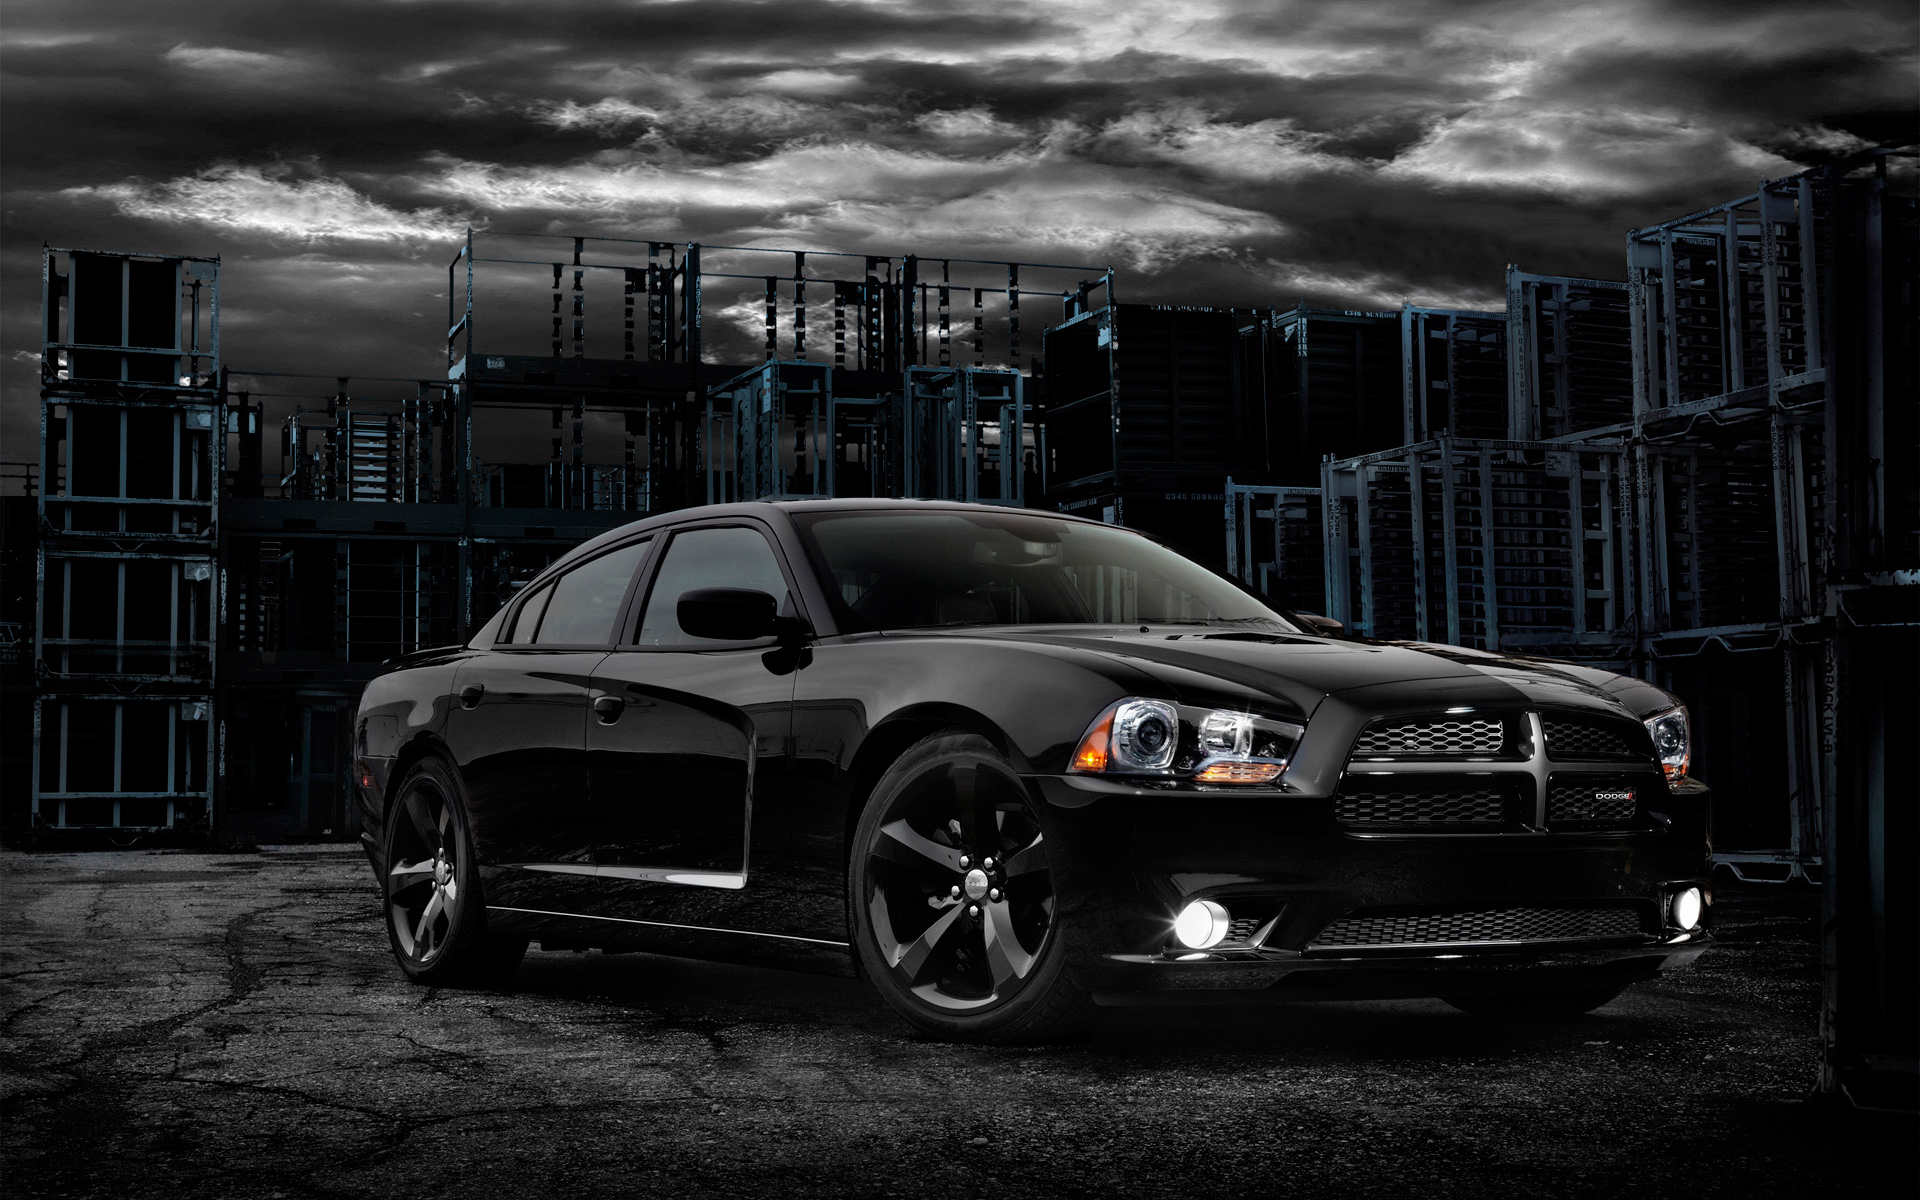 2012 Dodge Charger 2